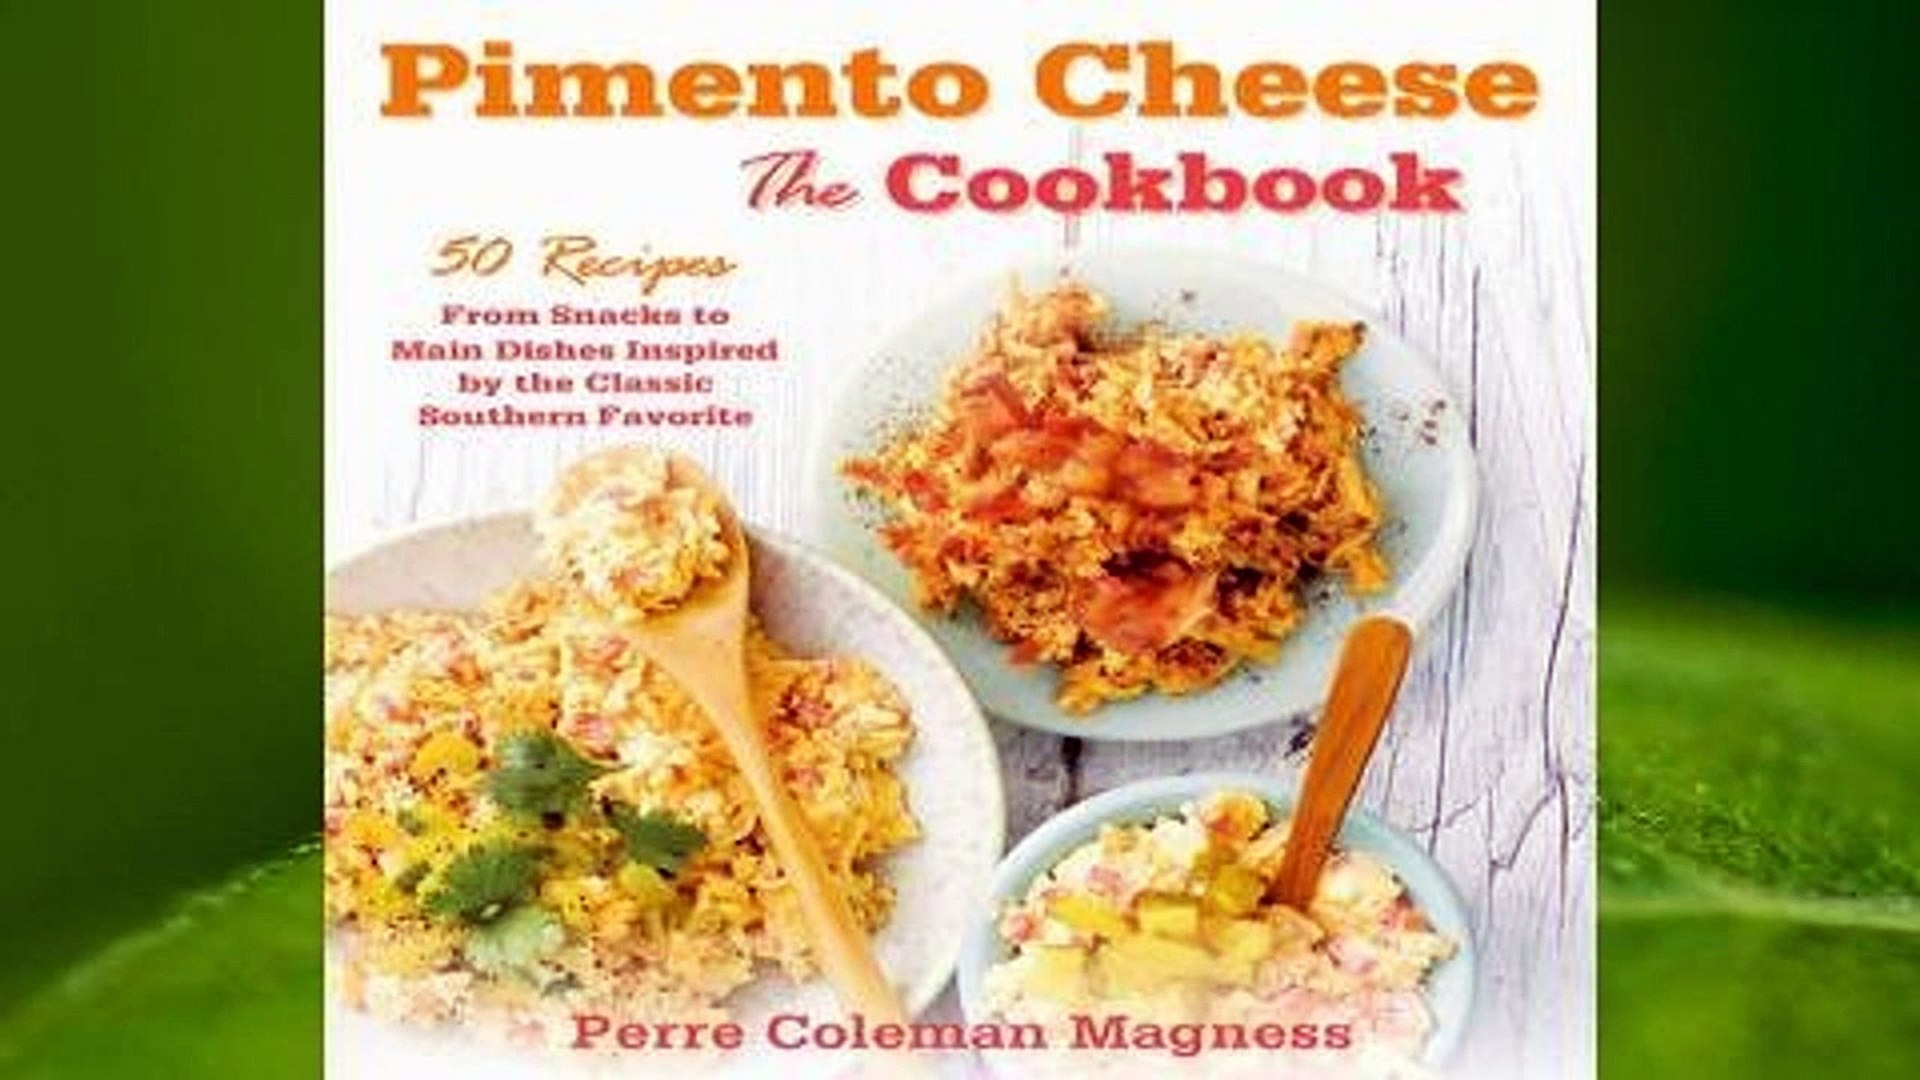 Online Pimento Cheese: The Cookbook: 50 Recipes from Snacks to Main Dishes Inspired by the Classic